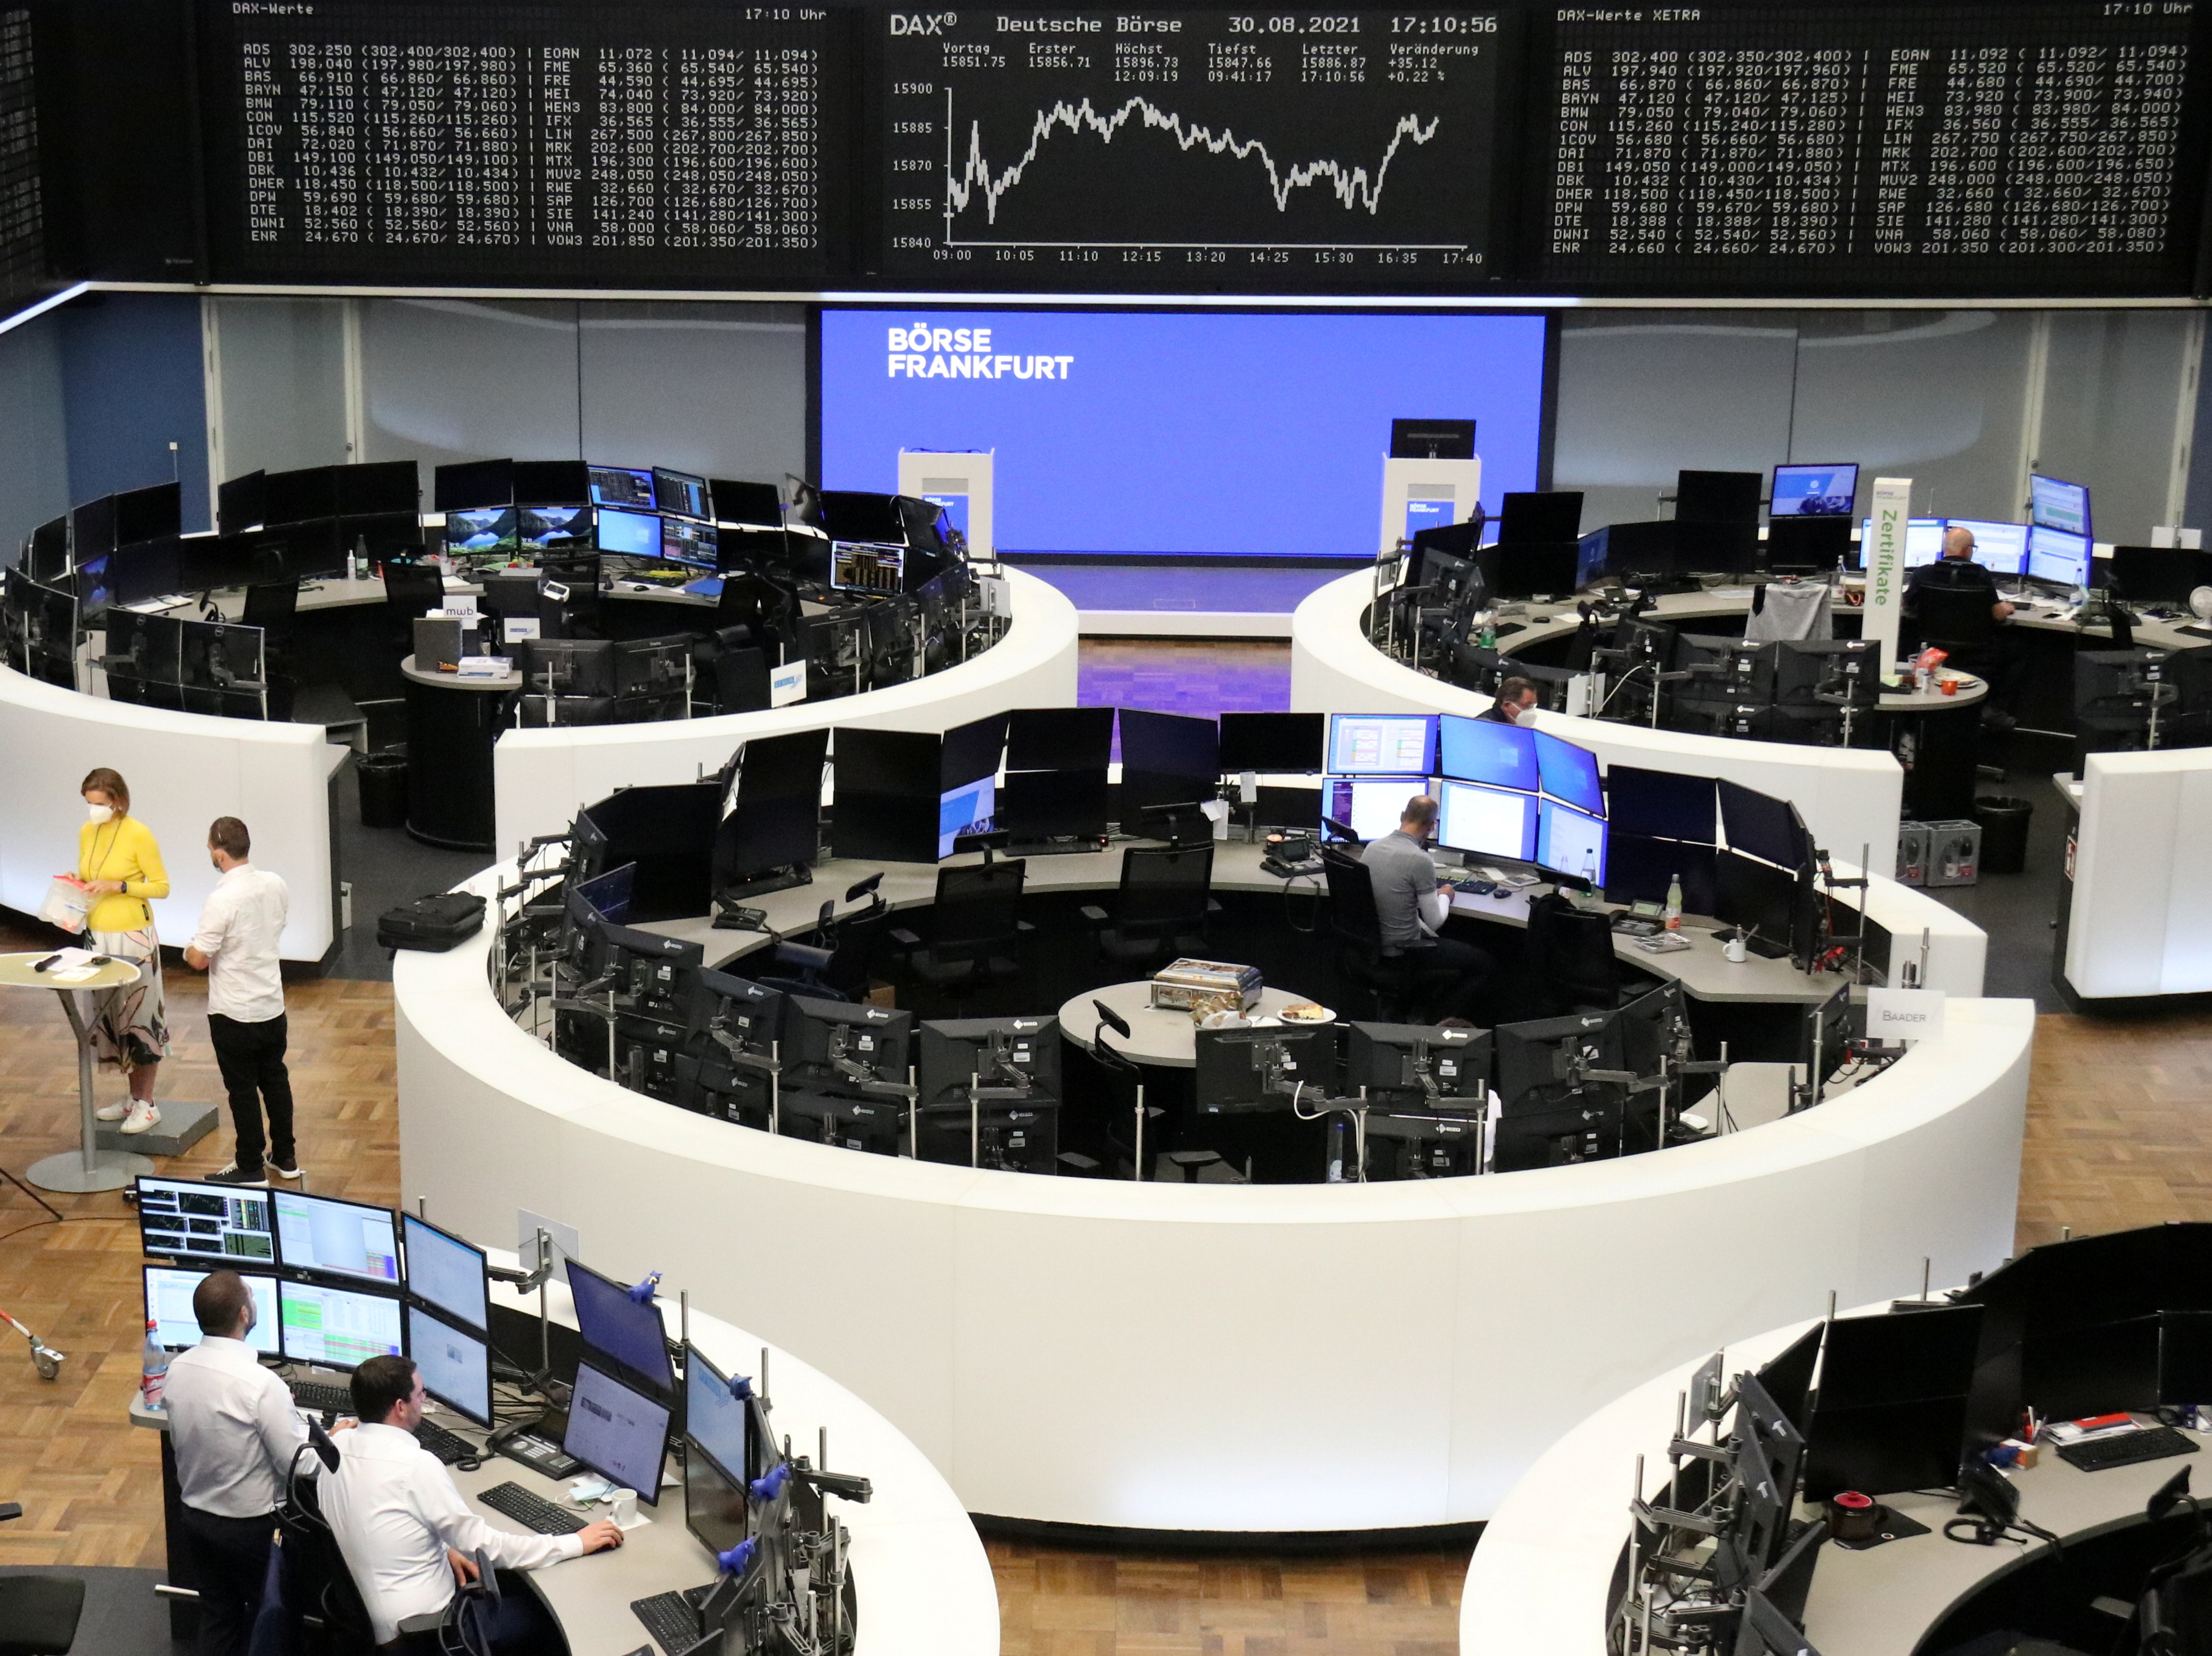 The German share price index DAX graph is pictured at the stock exchange in Frankfurt, Germany August 30, 2021. REUTERS/Staff